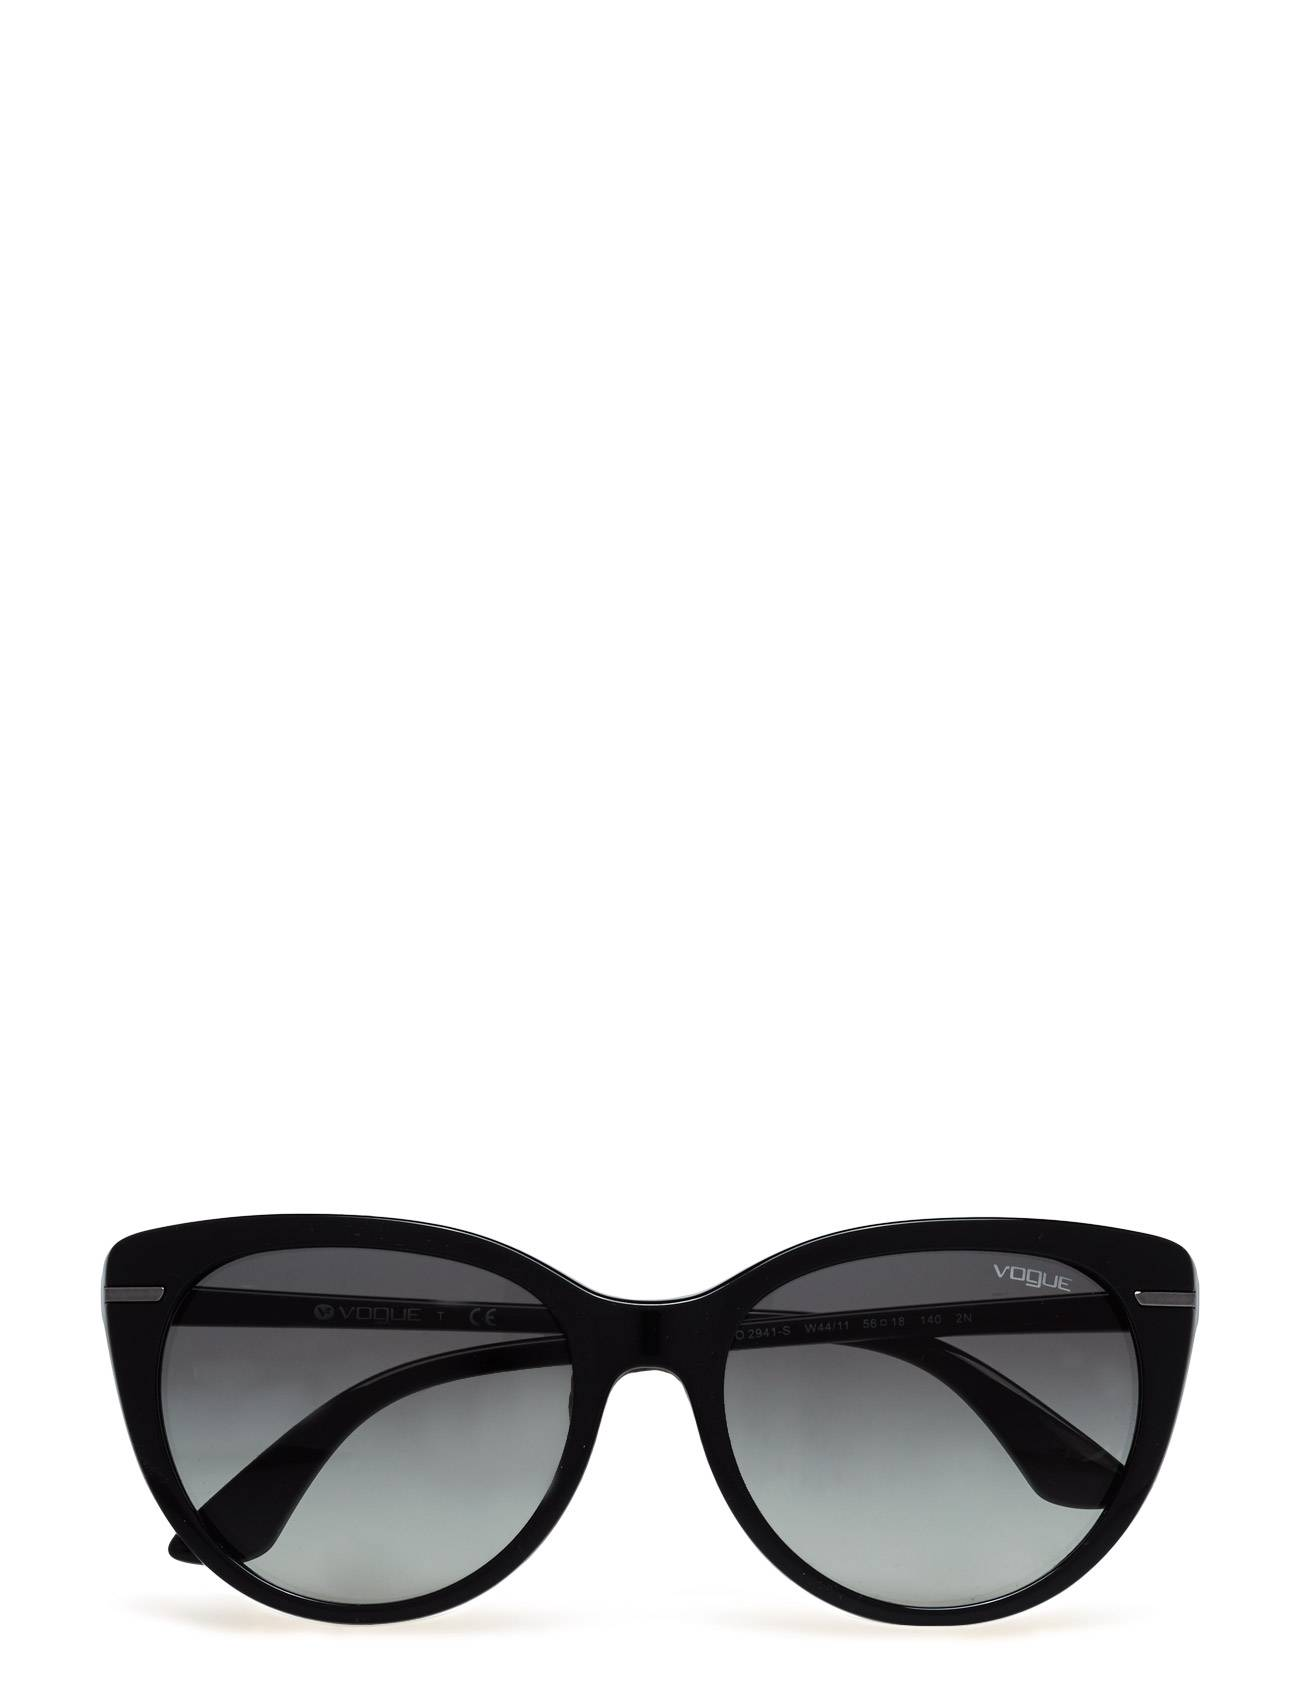 Vogue Eyewear In Vogue   Follow The Trend